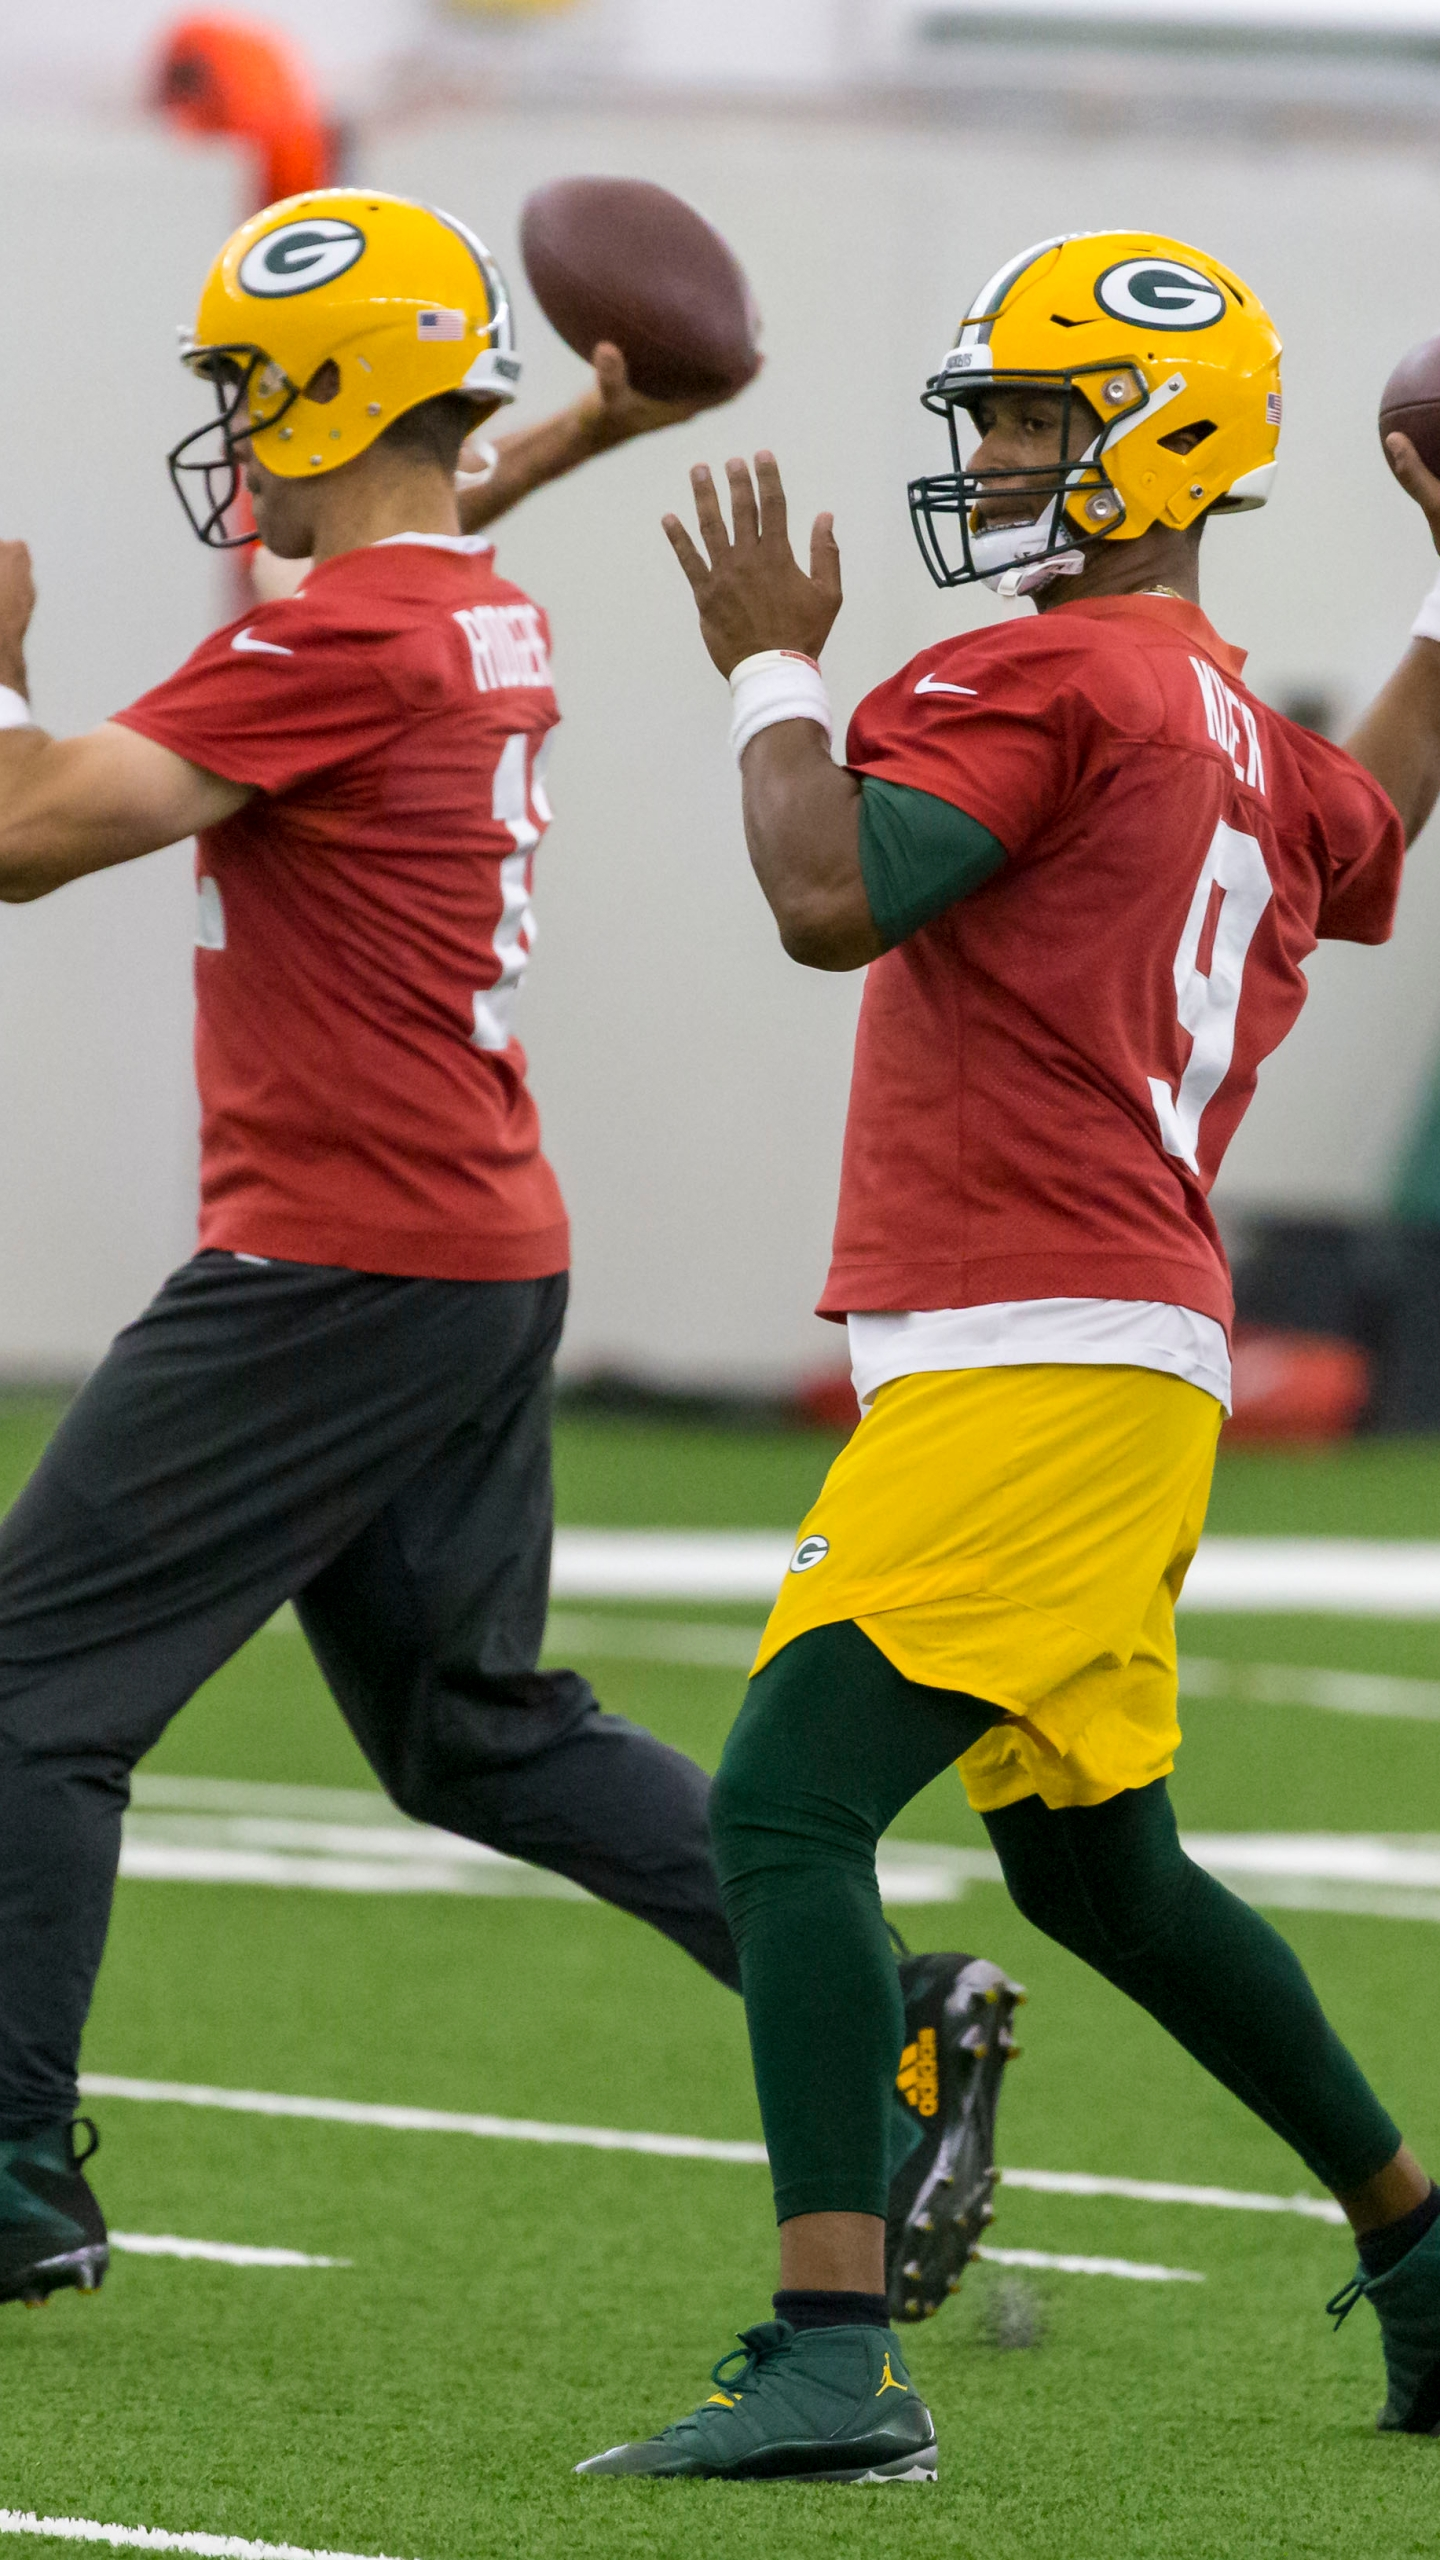 Rodgers and Kizer throw in Packers practice